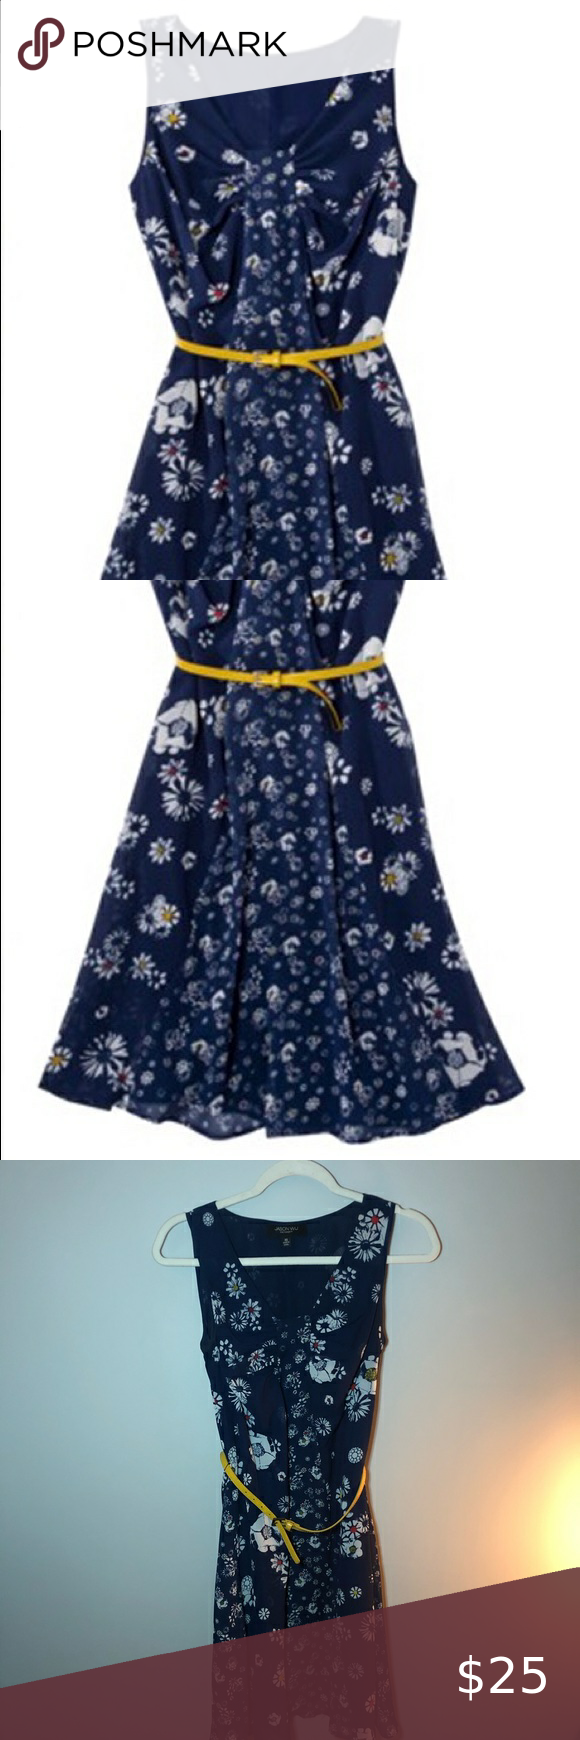 Jason Wu For Target Blue Floral Dress Xs Super Cute Blue Dress With White Flowers And A Yellow Belt Size Xs Jason Wu Dr Floral Blue Dress Floral Dress Dresses [ 1740 x 580 Pixel ]